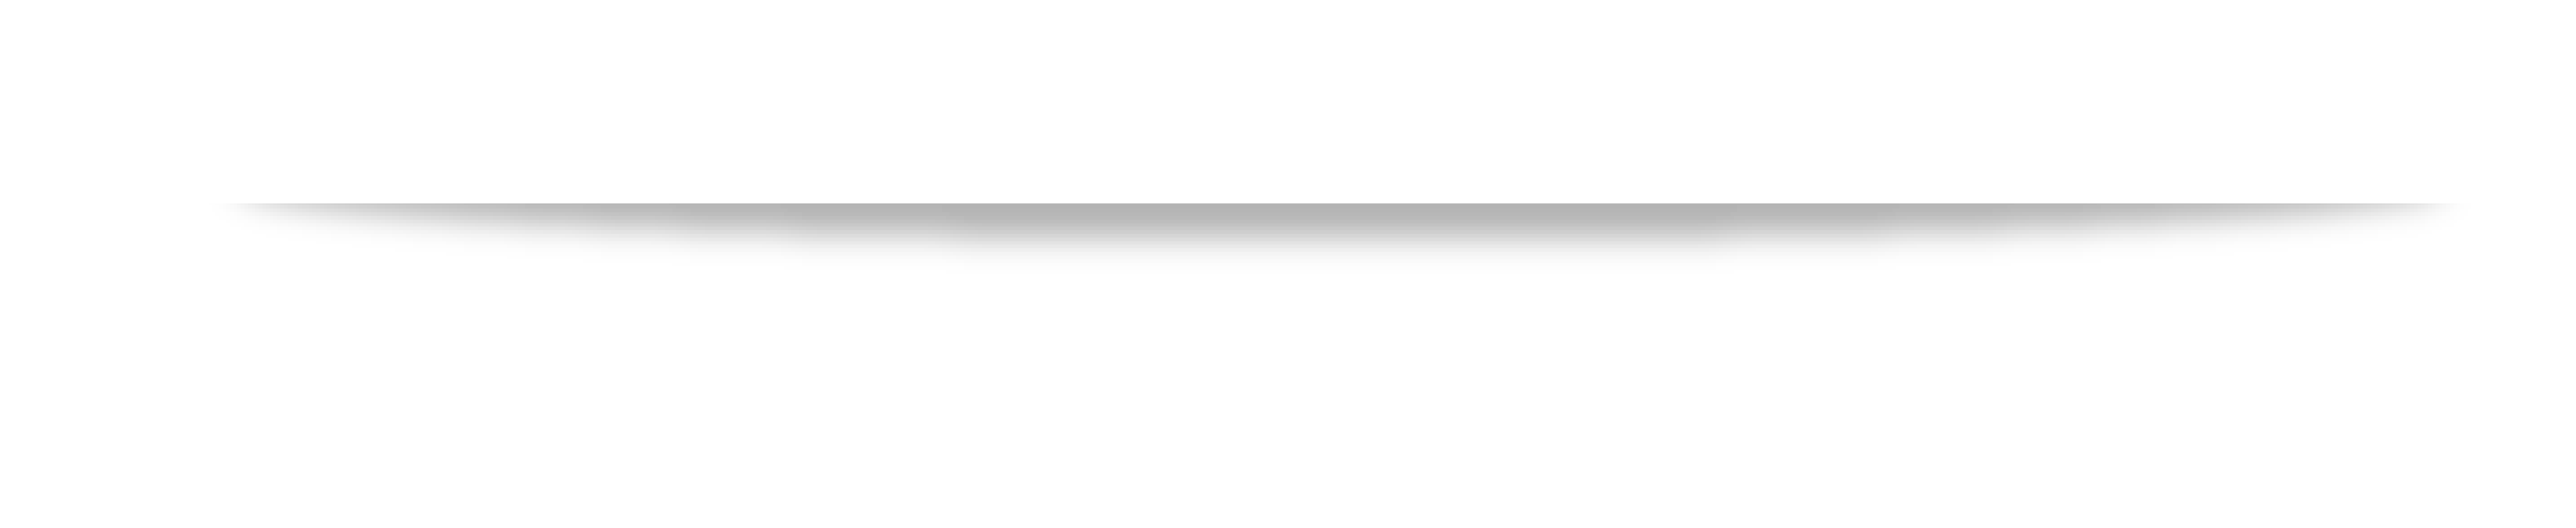 dark shadow line straight png #40944